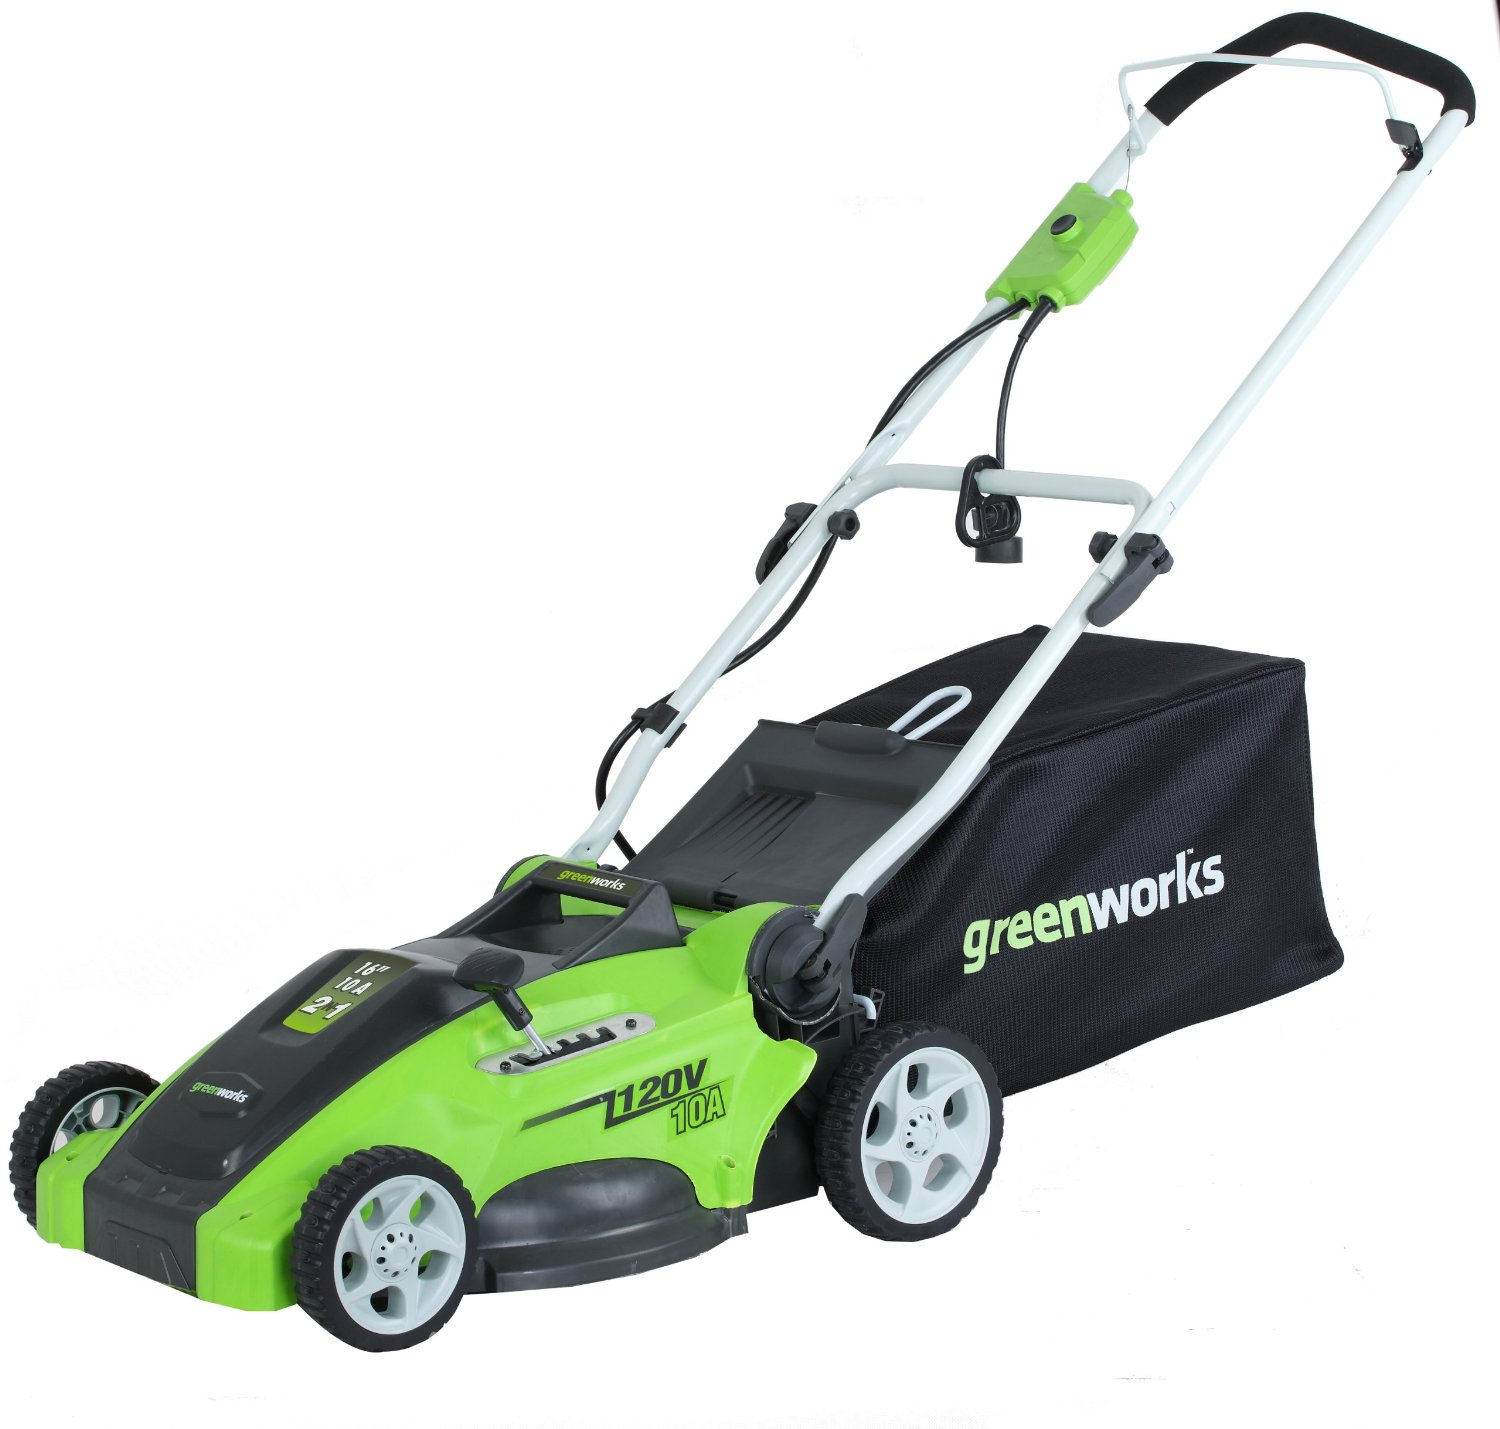 Review of GreenWorks 25142 10 Amp Corded 16 Inch Lawn Mower